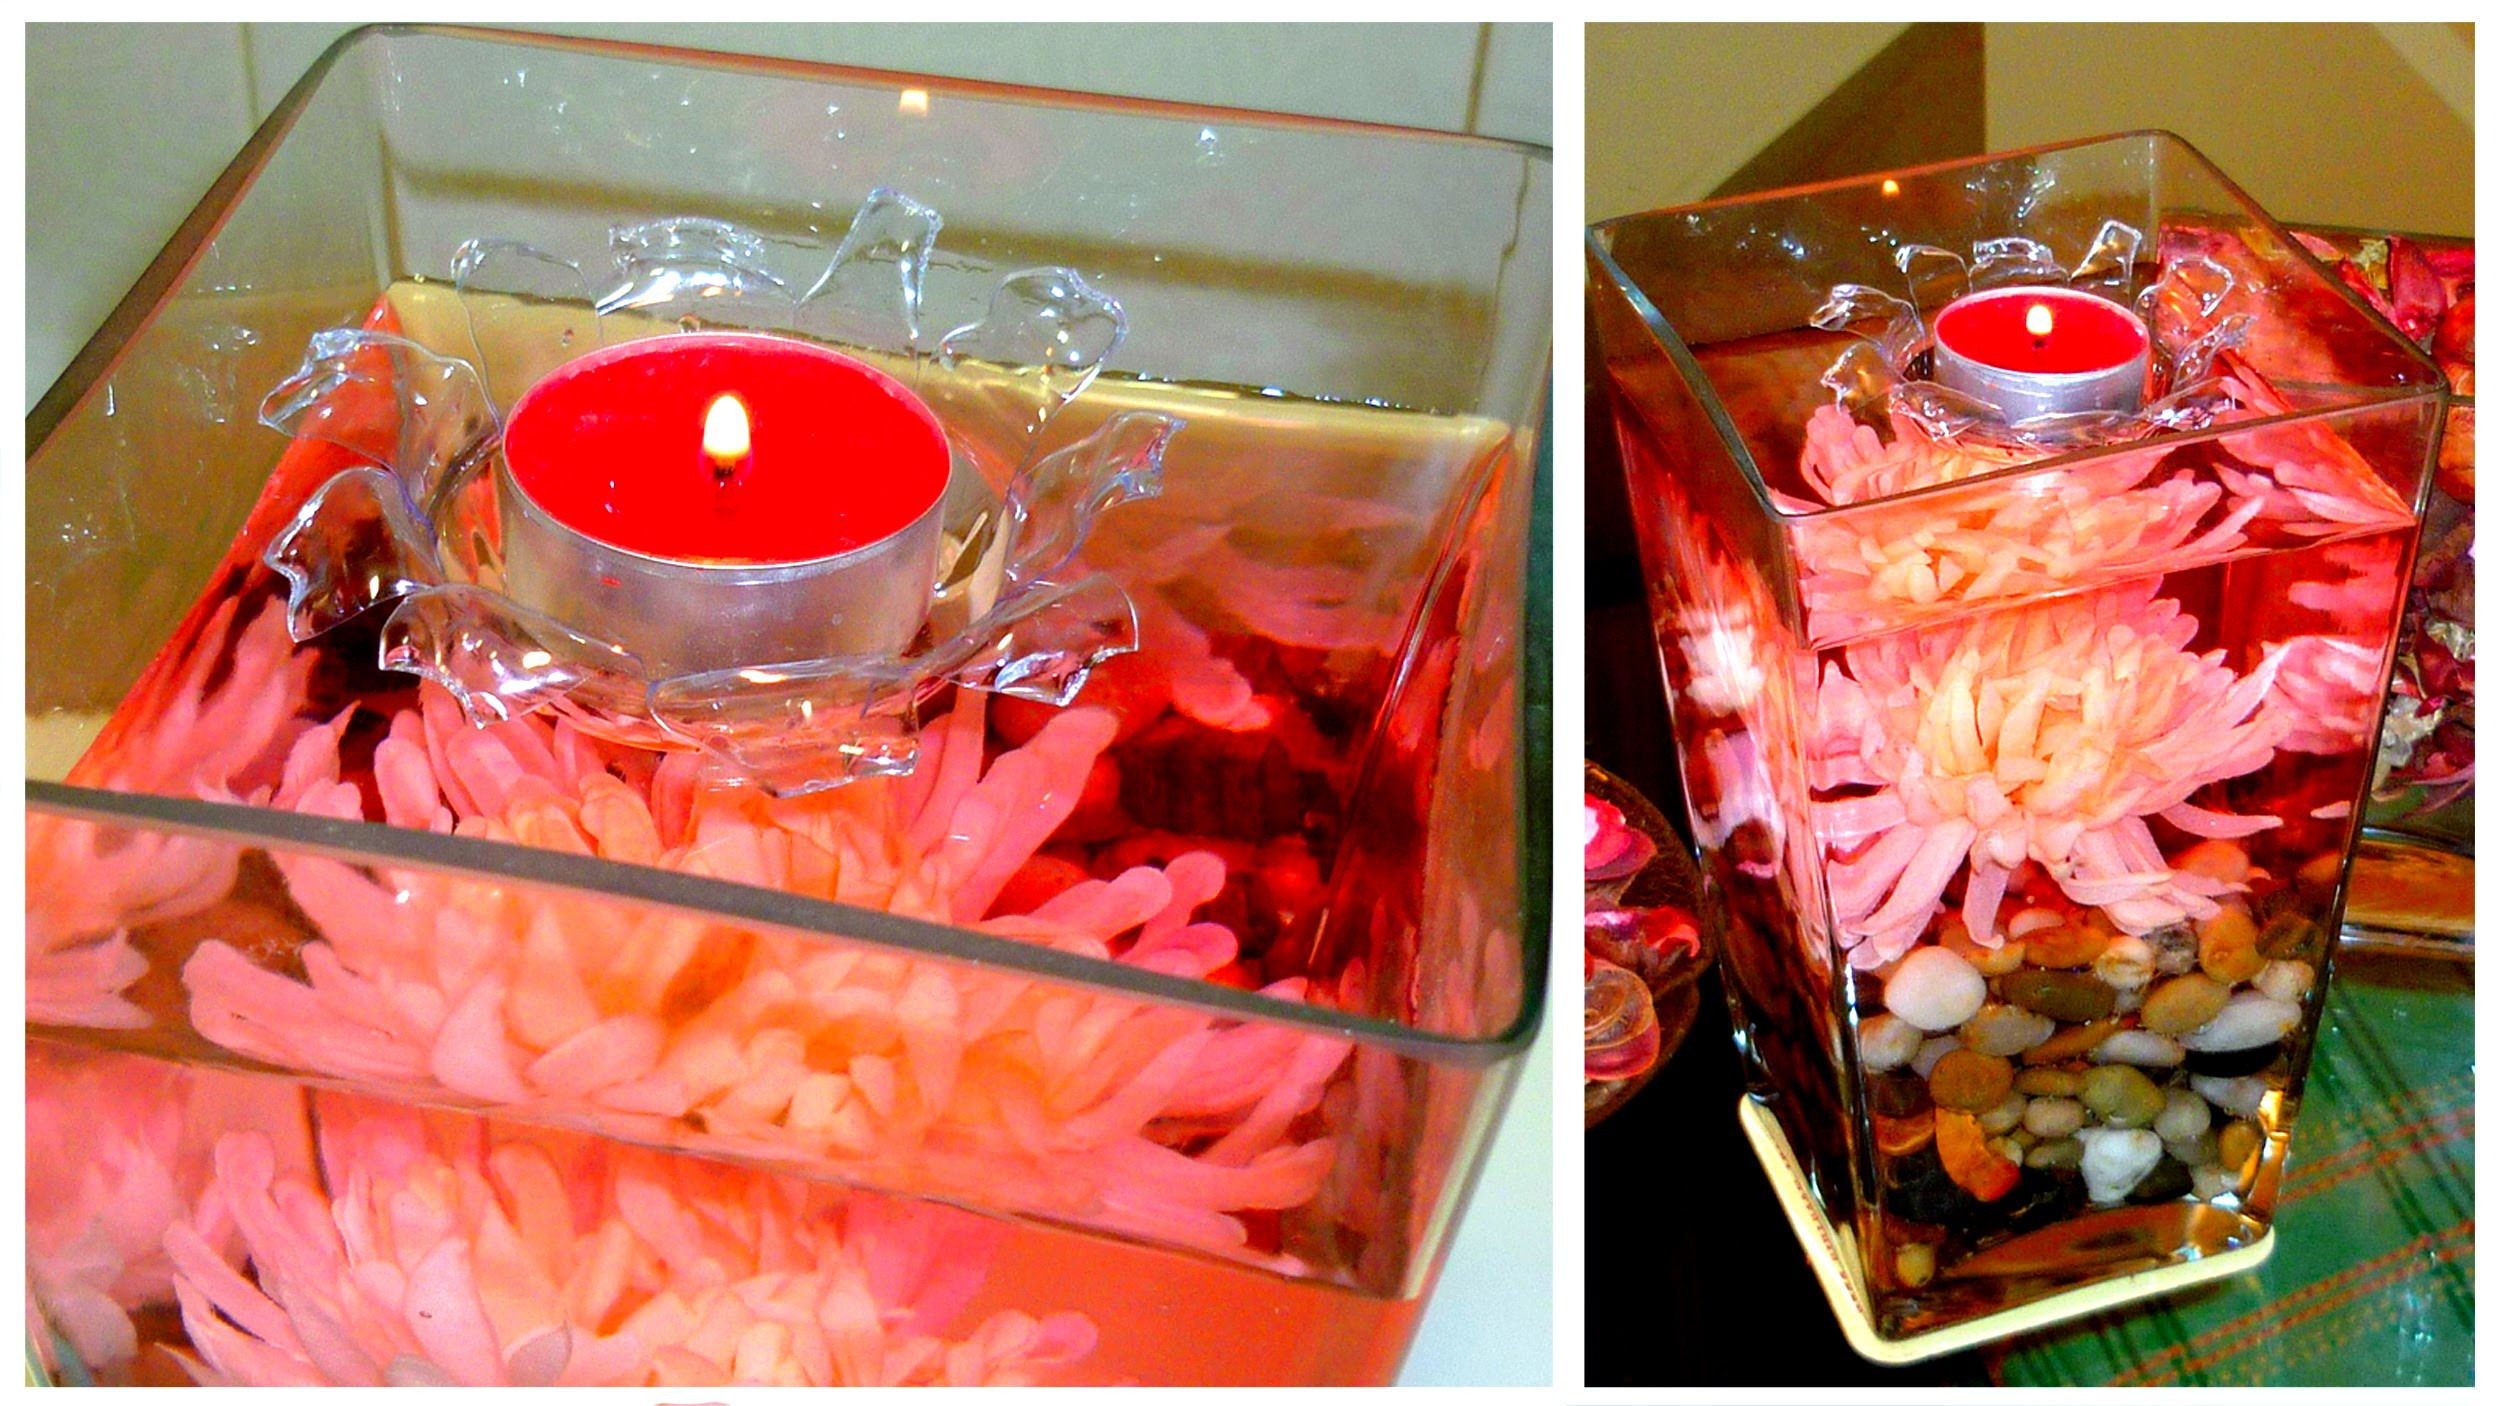 DIY ROOM DECOR ❤ FLOATING candle centerpiece!